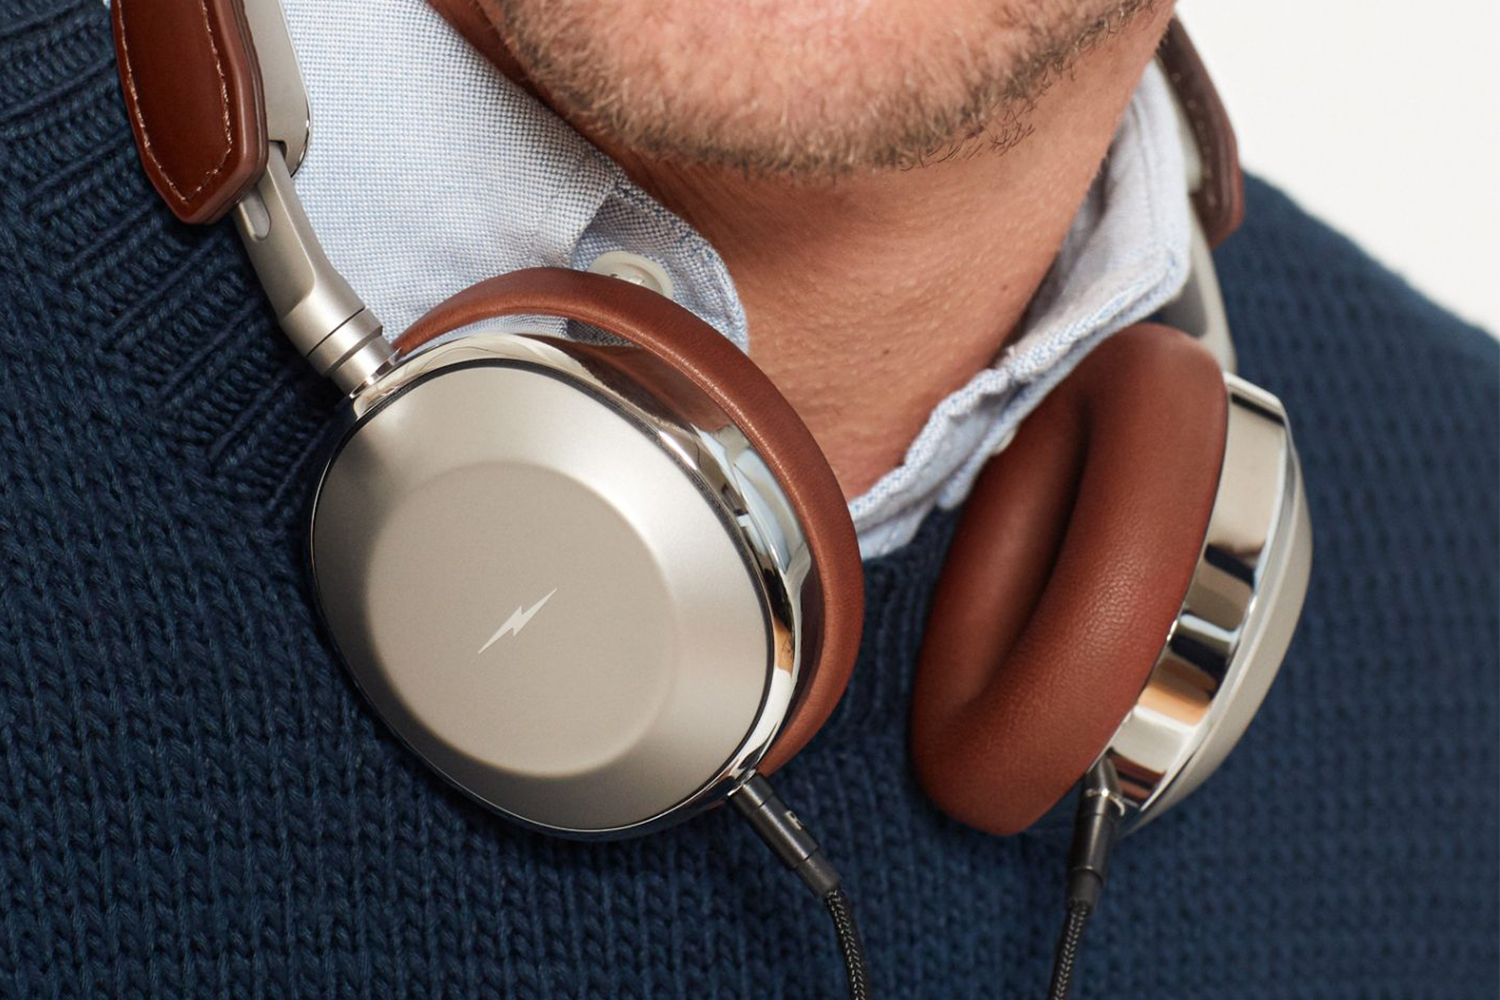 Shinola's Canfield headphones are on sale for 75% off at Nordstrom Rack.